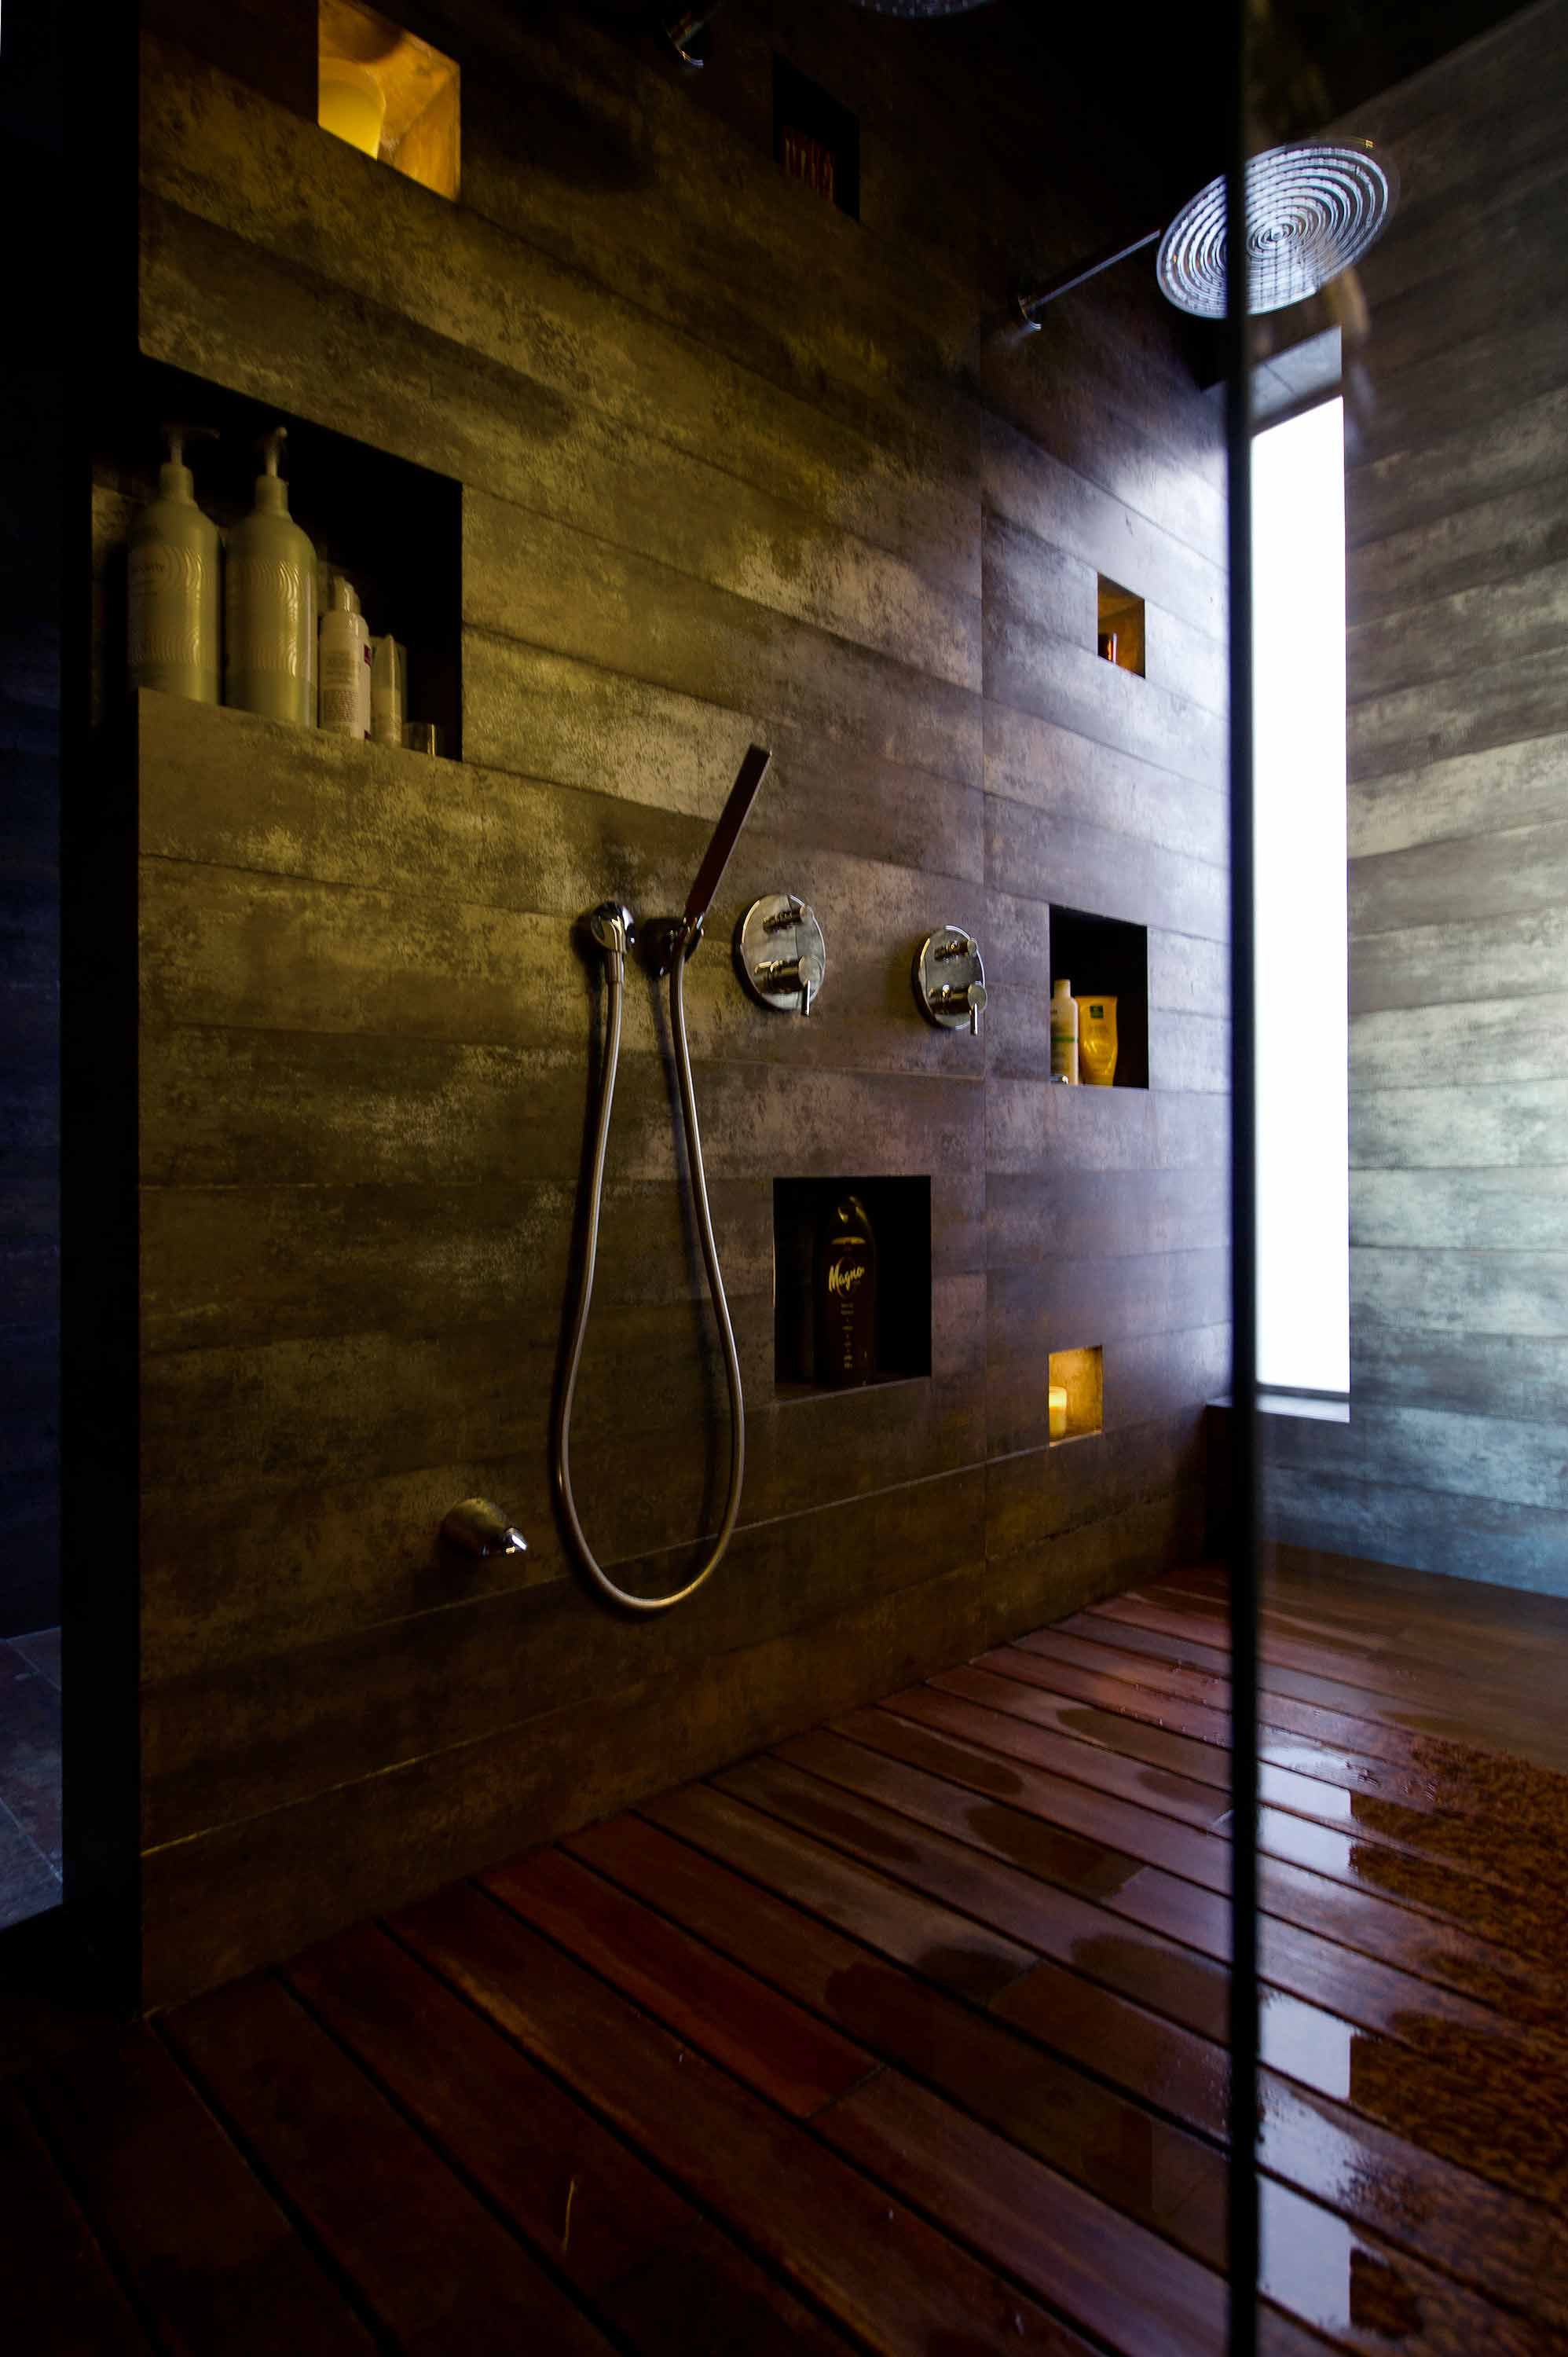 Inset spaces provide enough shelving for shower products and accessories like candles.